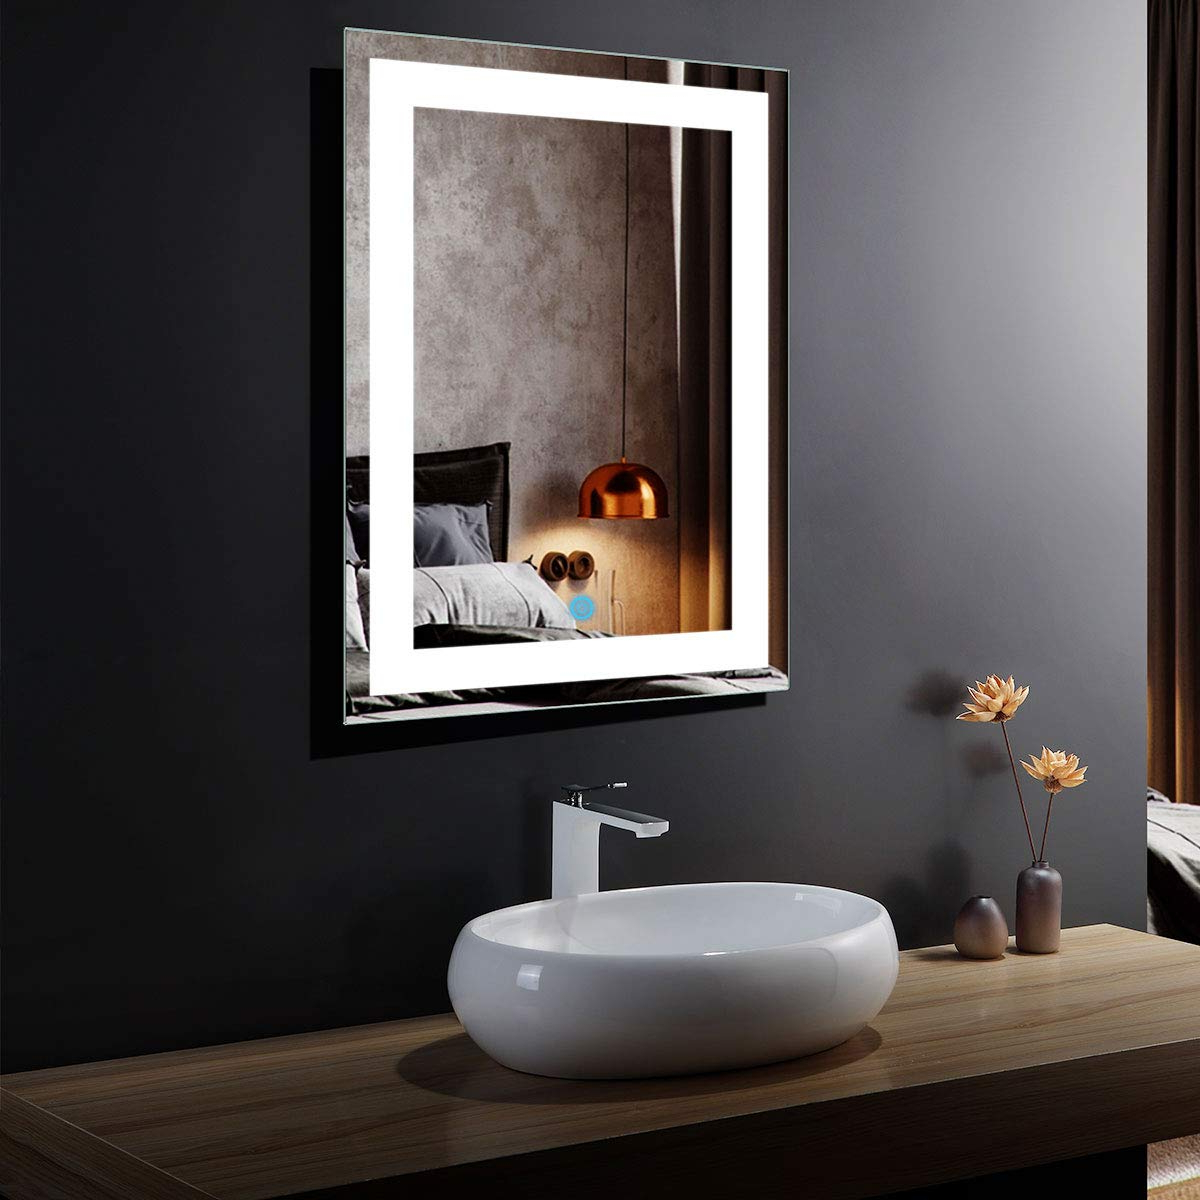 """Dp Home 24"""" Led Lighted Illuminated Bathroom Vanity Wall Mirror With Touch Sensor, Vertical Rectangle White Mirrors 24 X 32 In E Ck010 Regarding Latest Wall Mirror For Bathroom (View 11 of 20)"""